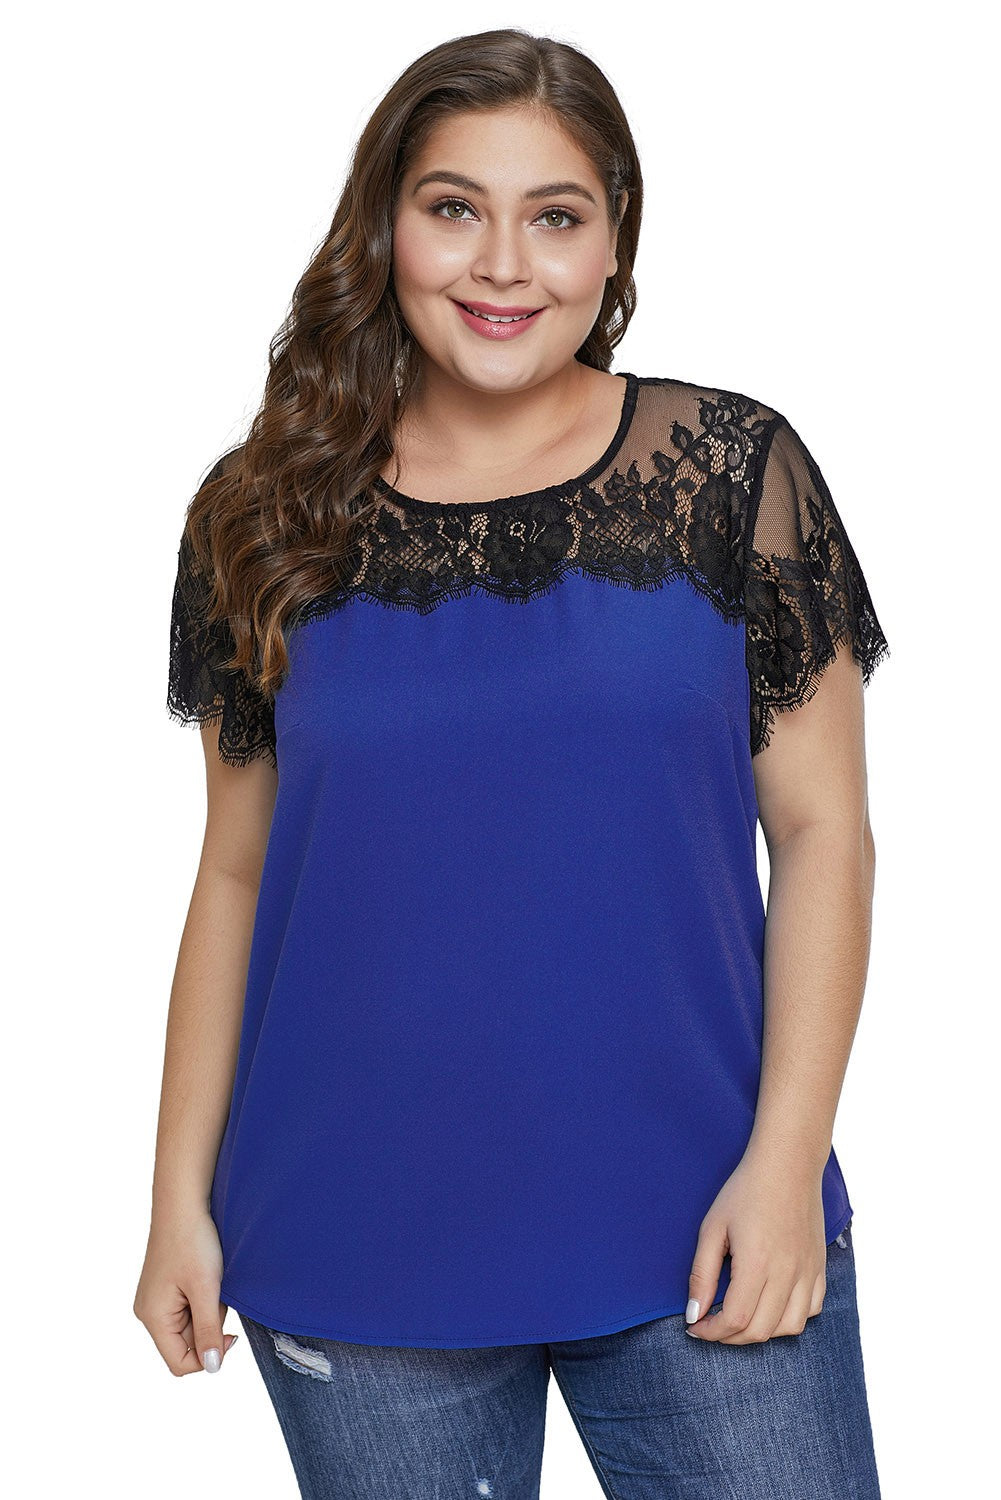 Plus Size Lace Tops